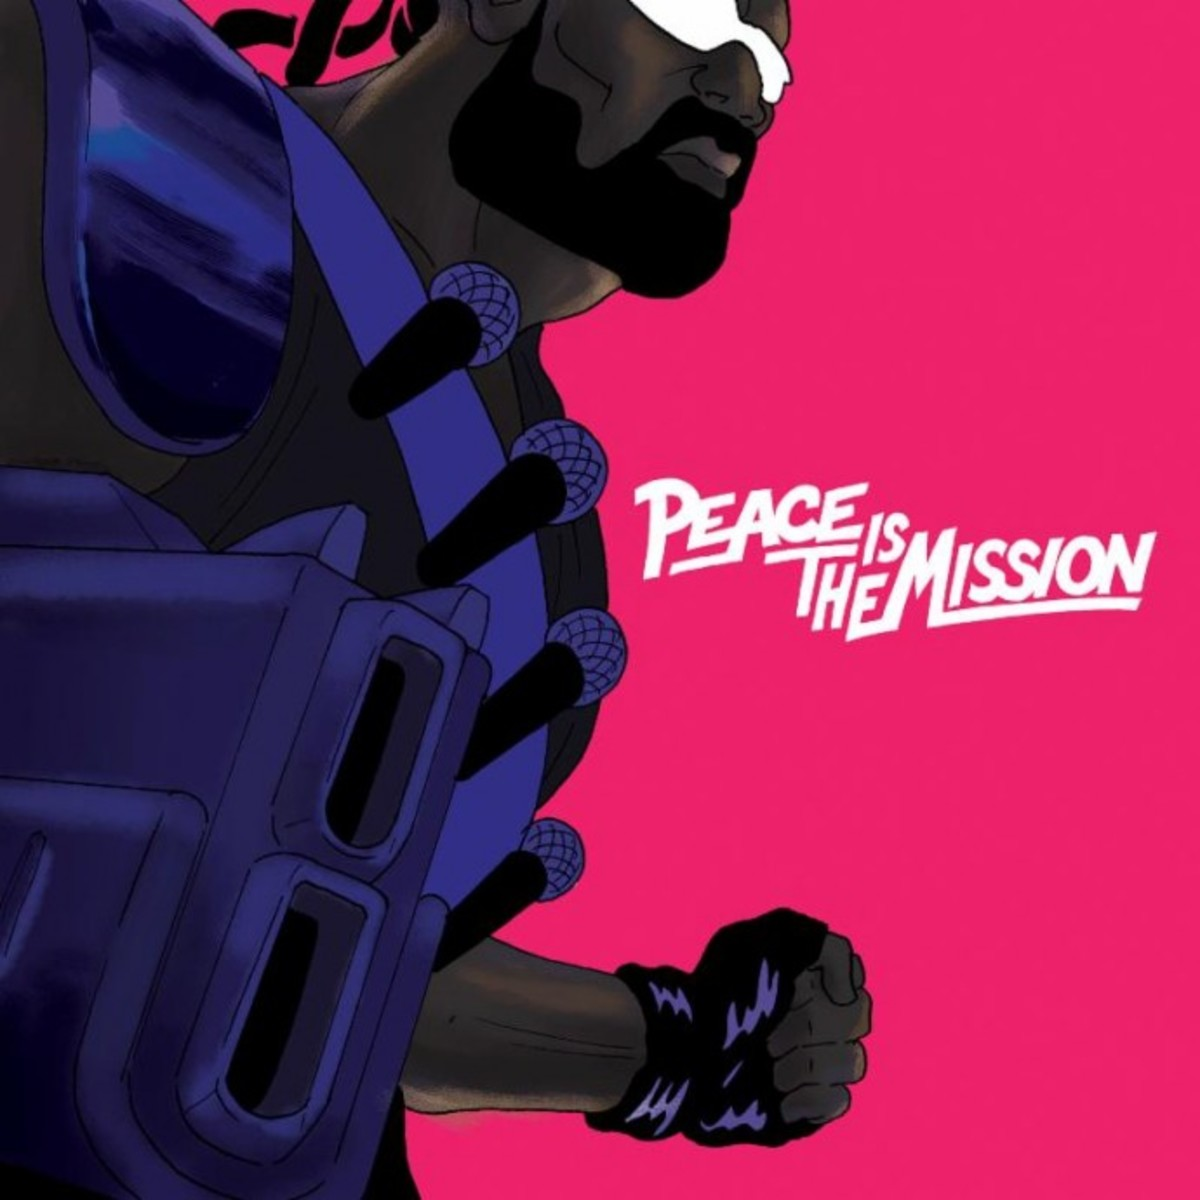 Major Lazer Dropping Several New Albums